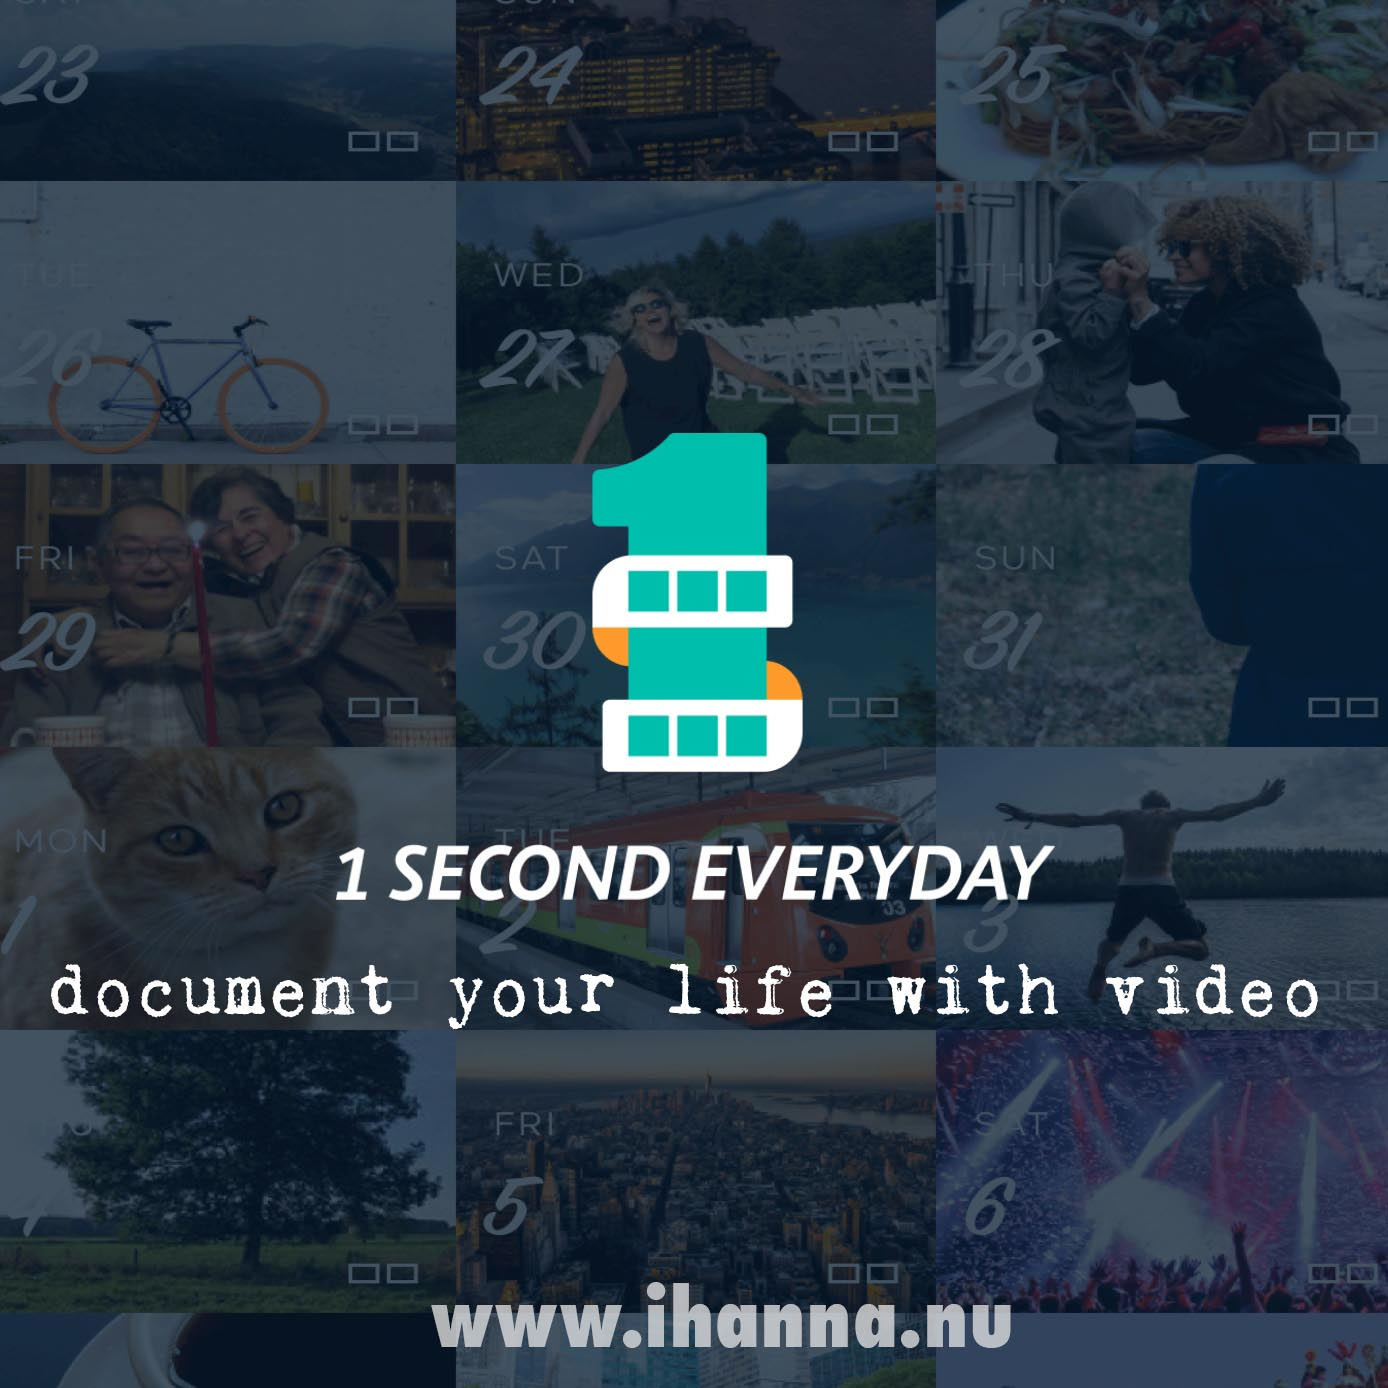 Video Journal - Document one second of your day everyday with this app - blog post by Hanna Andersson